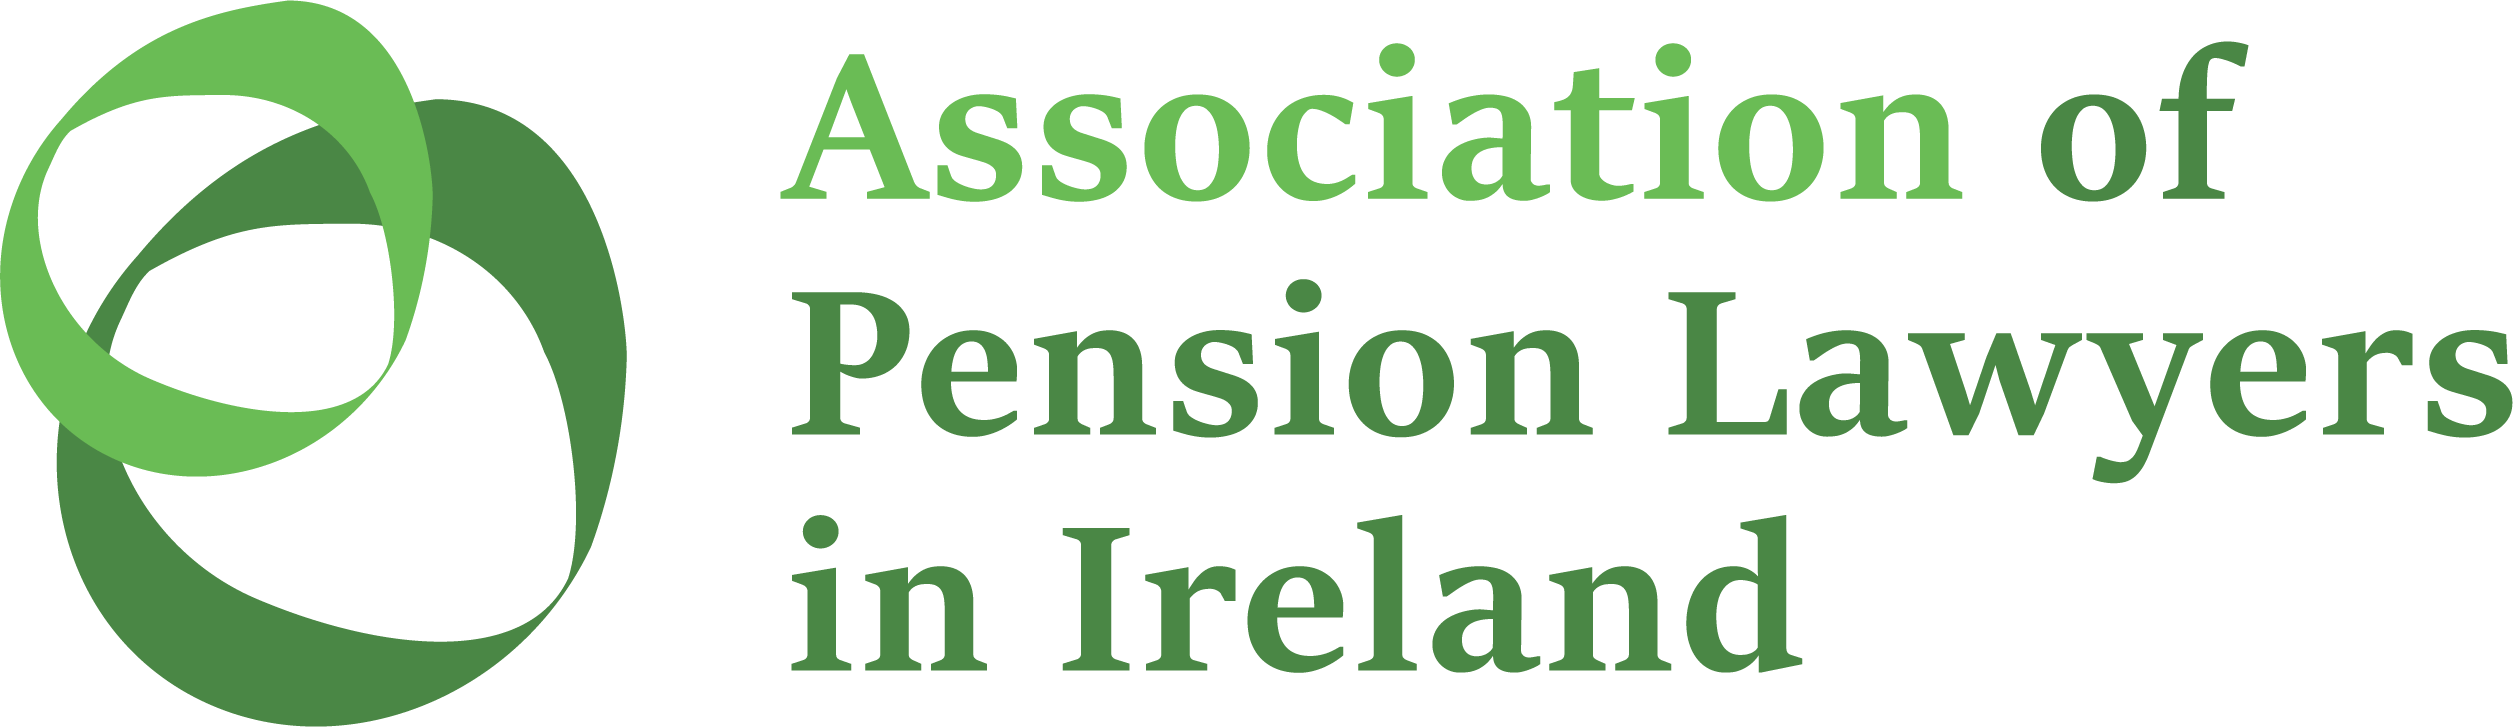 APLI - The Association of Pension Lawyers in Ireland